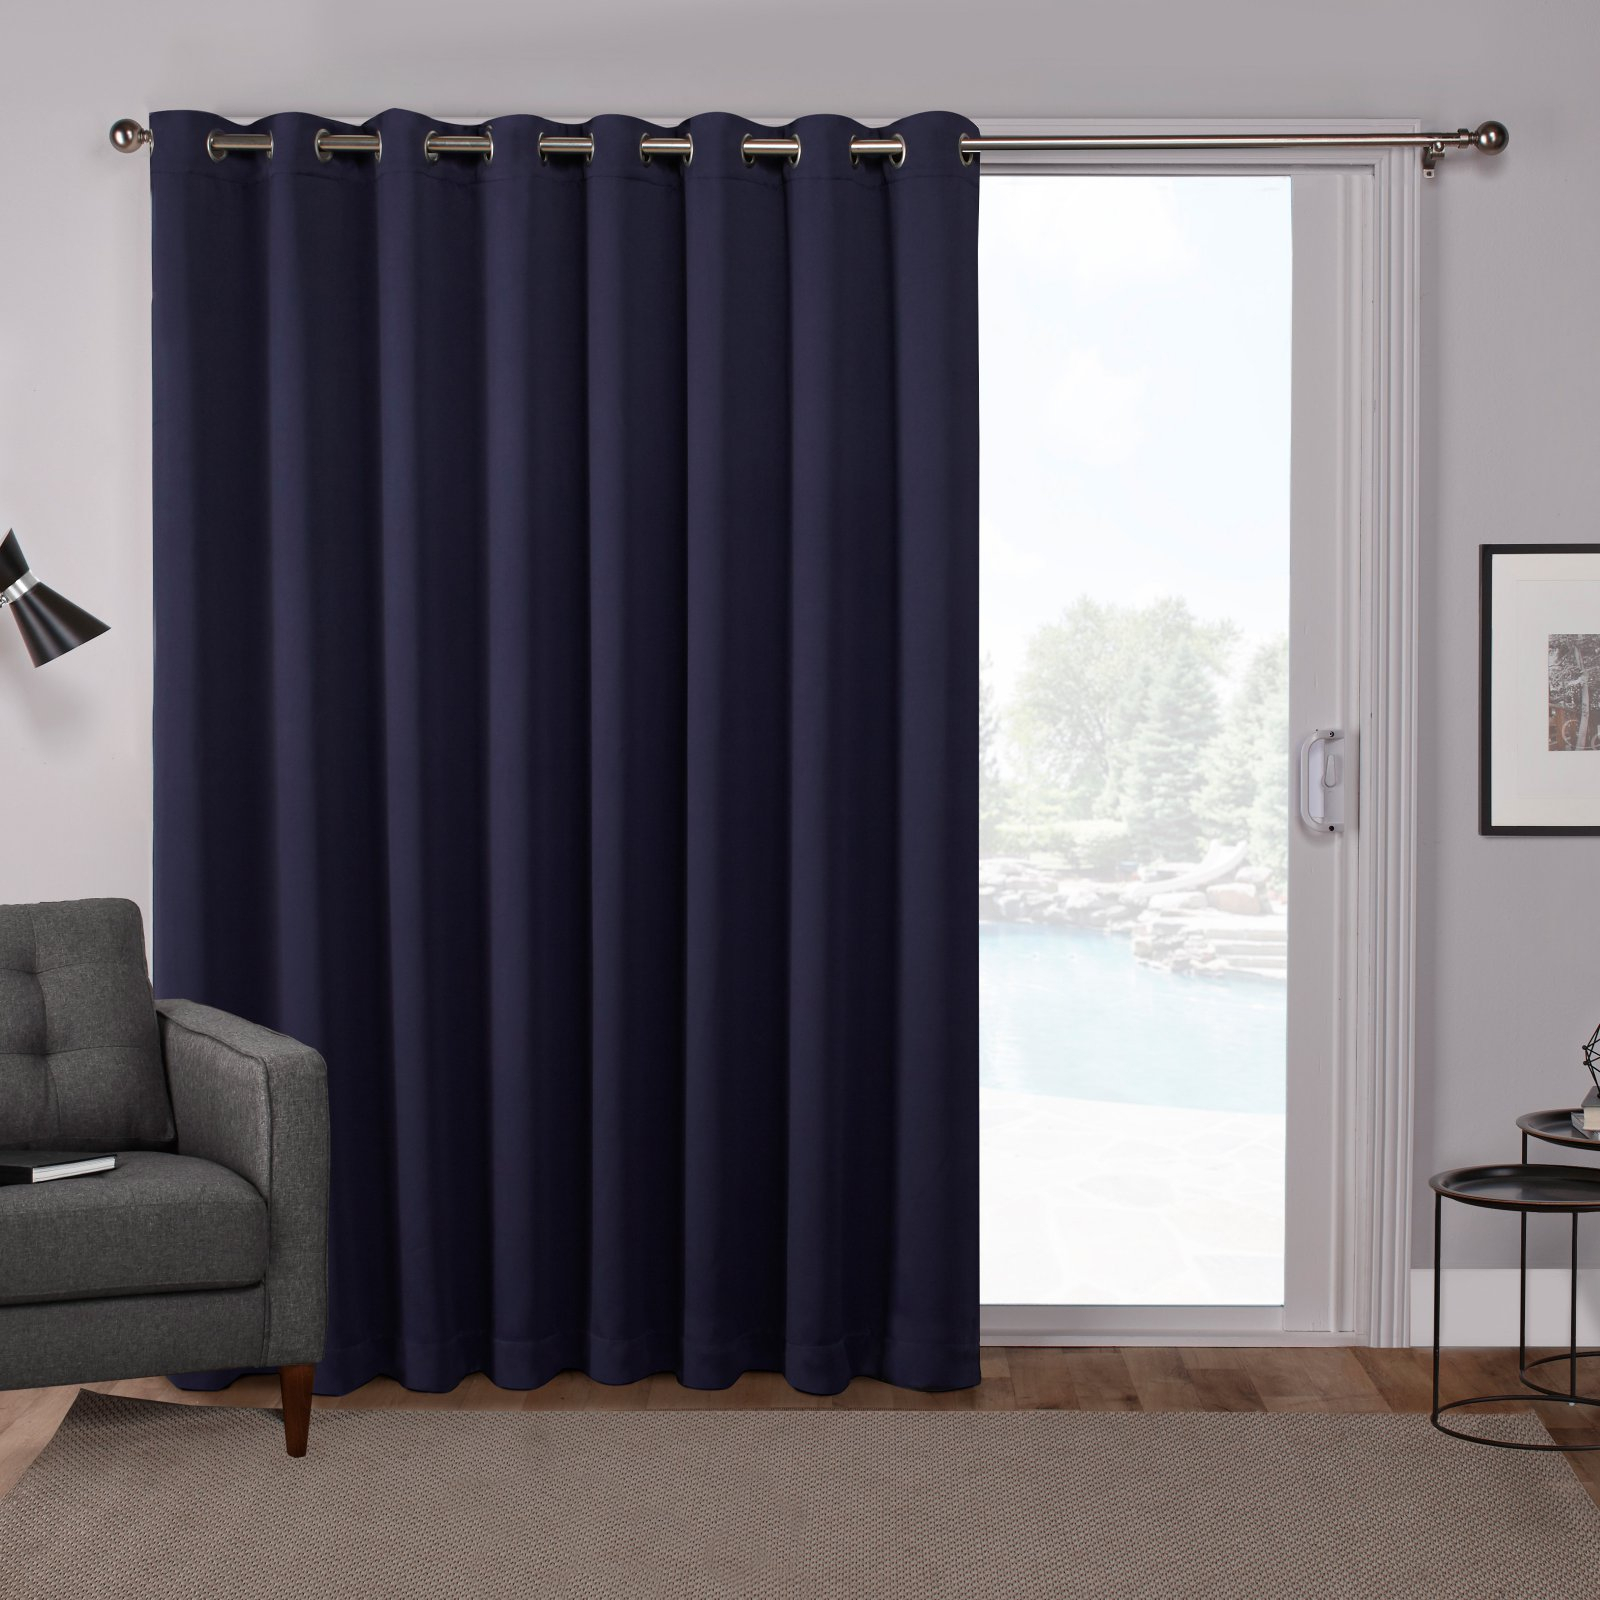 Exclusive Home Sateen Blackout Grommet Top Curtain Panel With Inez Patio Door Window Curtain Panels (View 11 of 20)